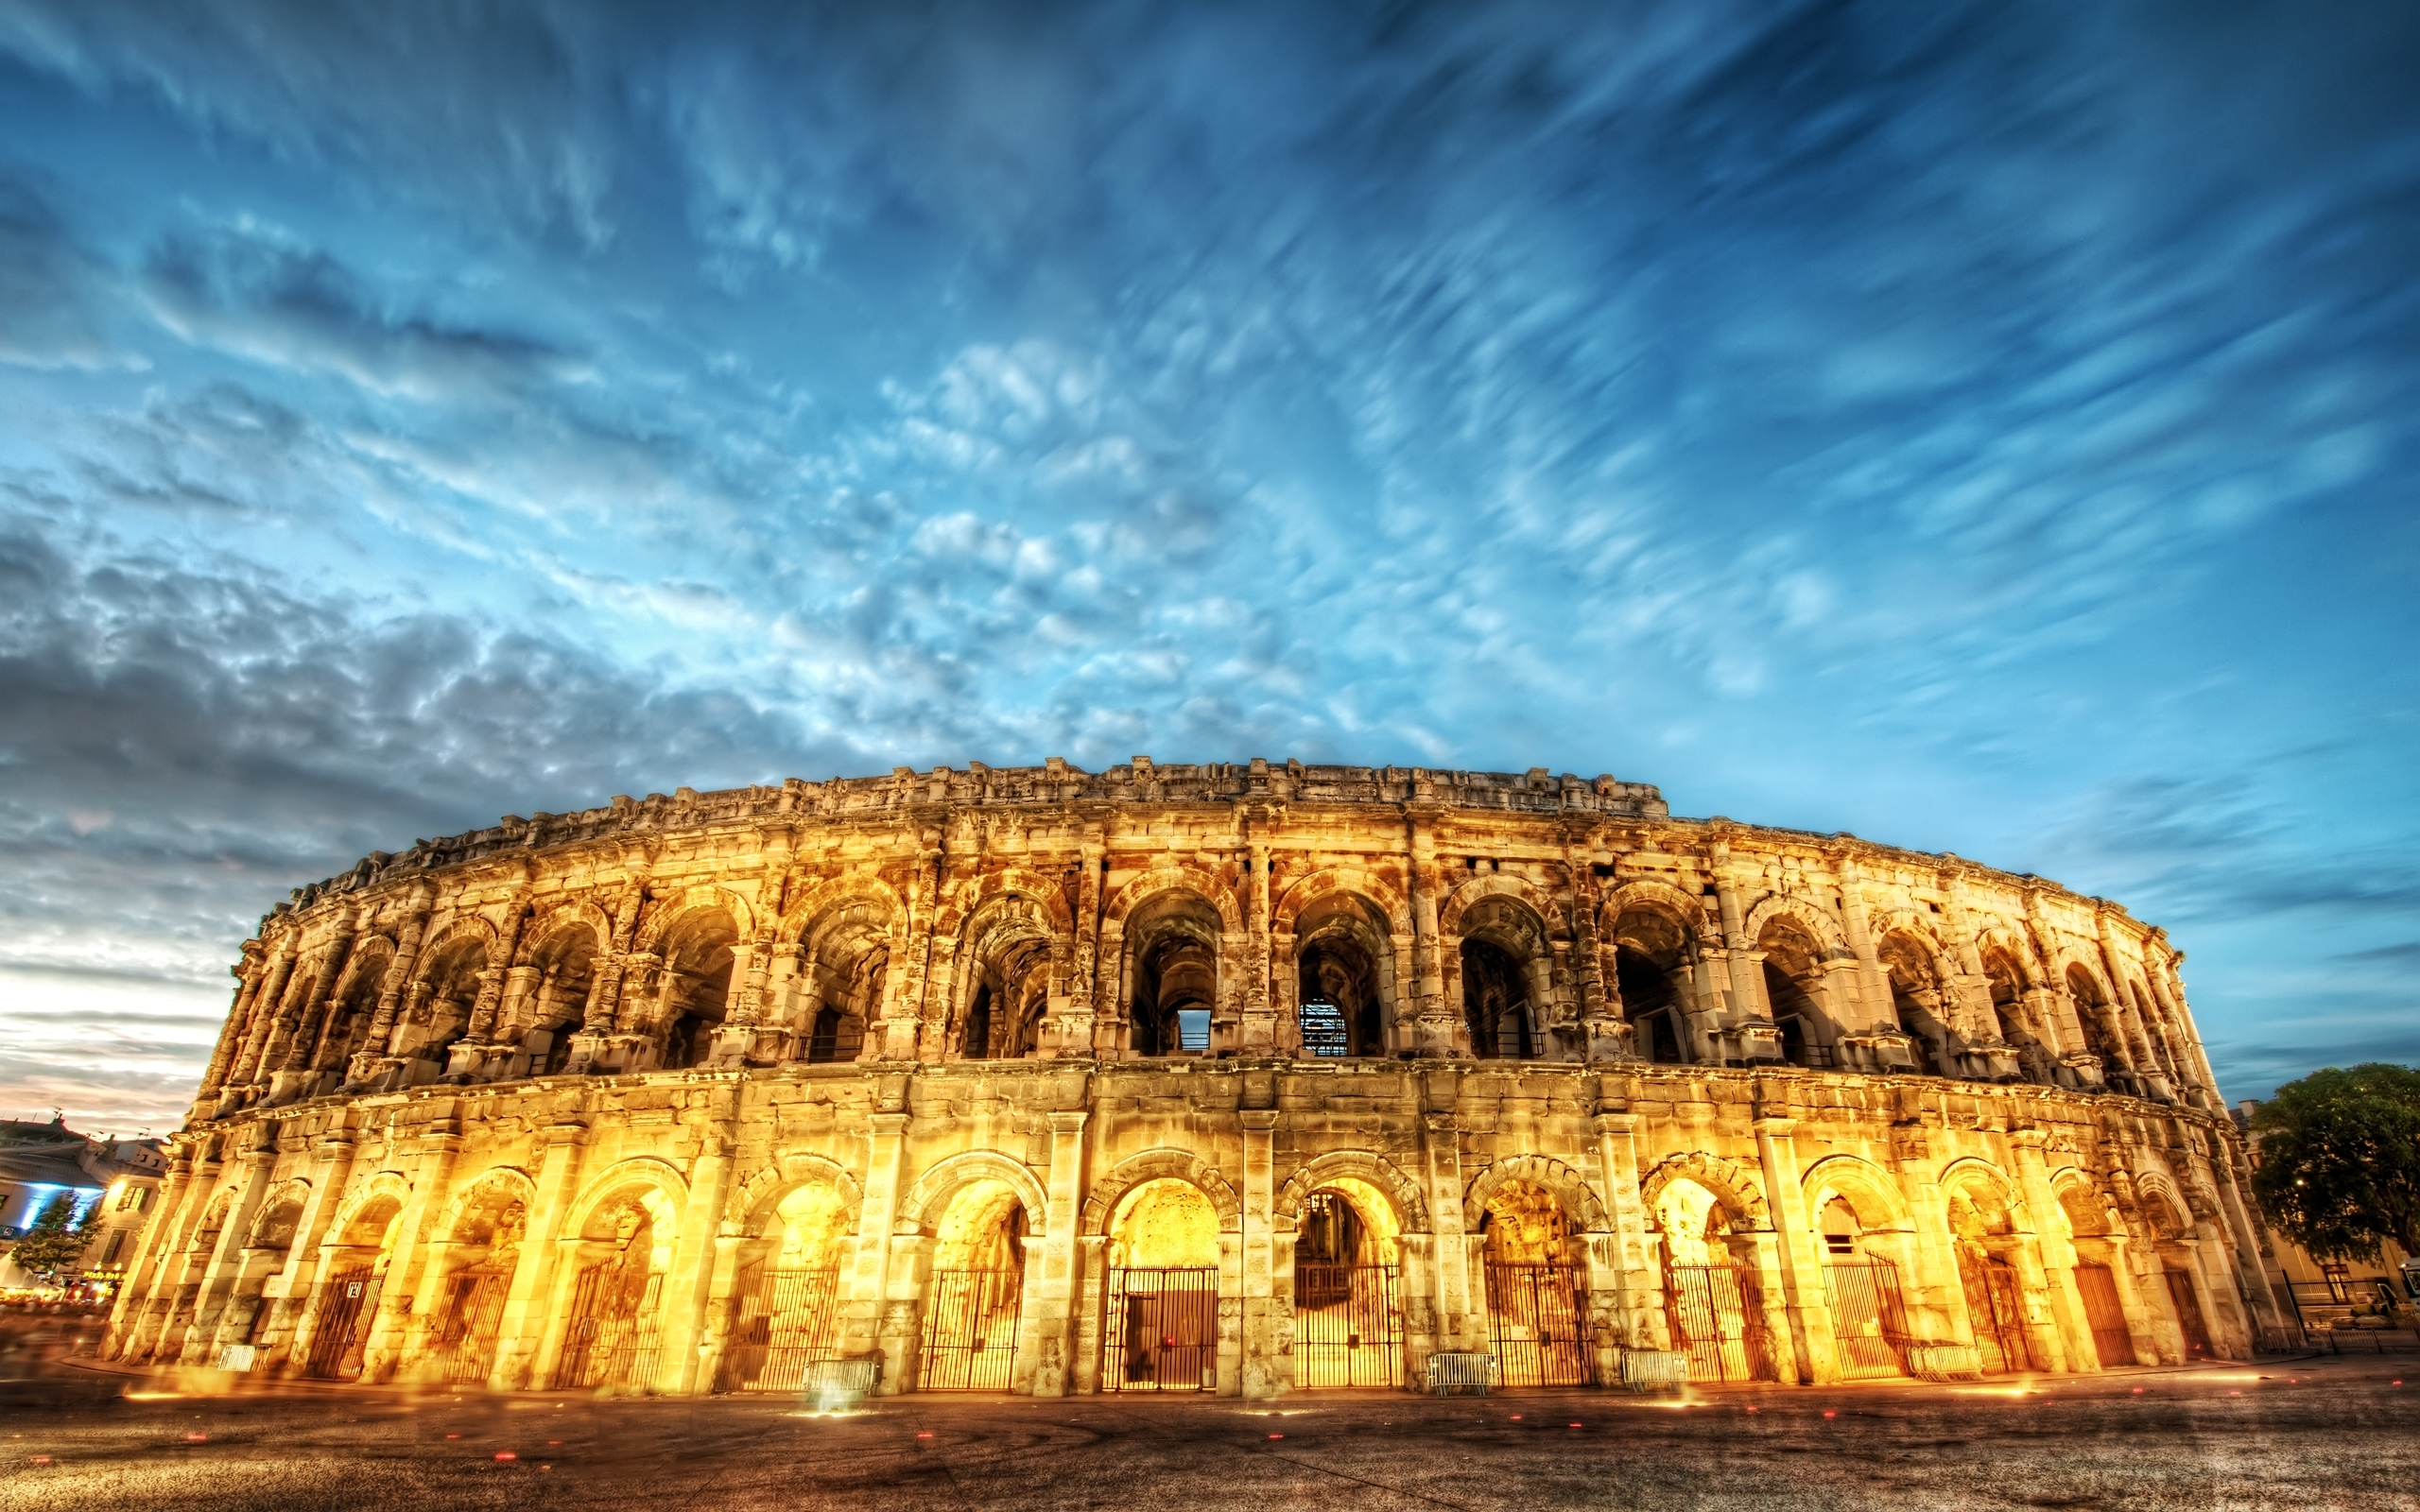 De as well Colosseum Restoration Before And After Wallpaper 1 in addition Beautiful Architecture In The Night Colosseum Of Rome additionally Rome Colosseum 2560x1440 further 3840x2160. on download coliseum italy 1920x1080 wallpaper